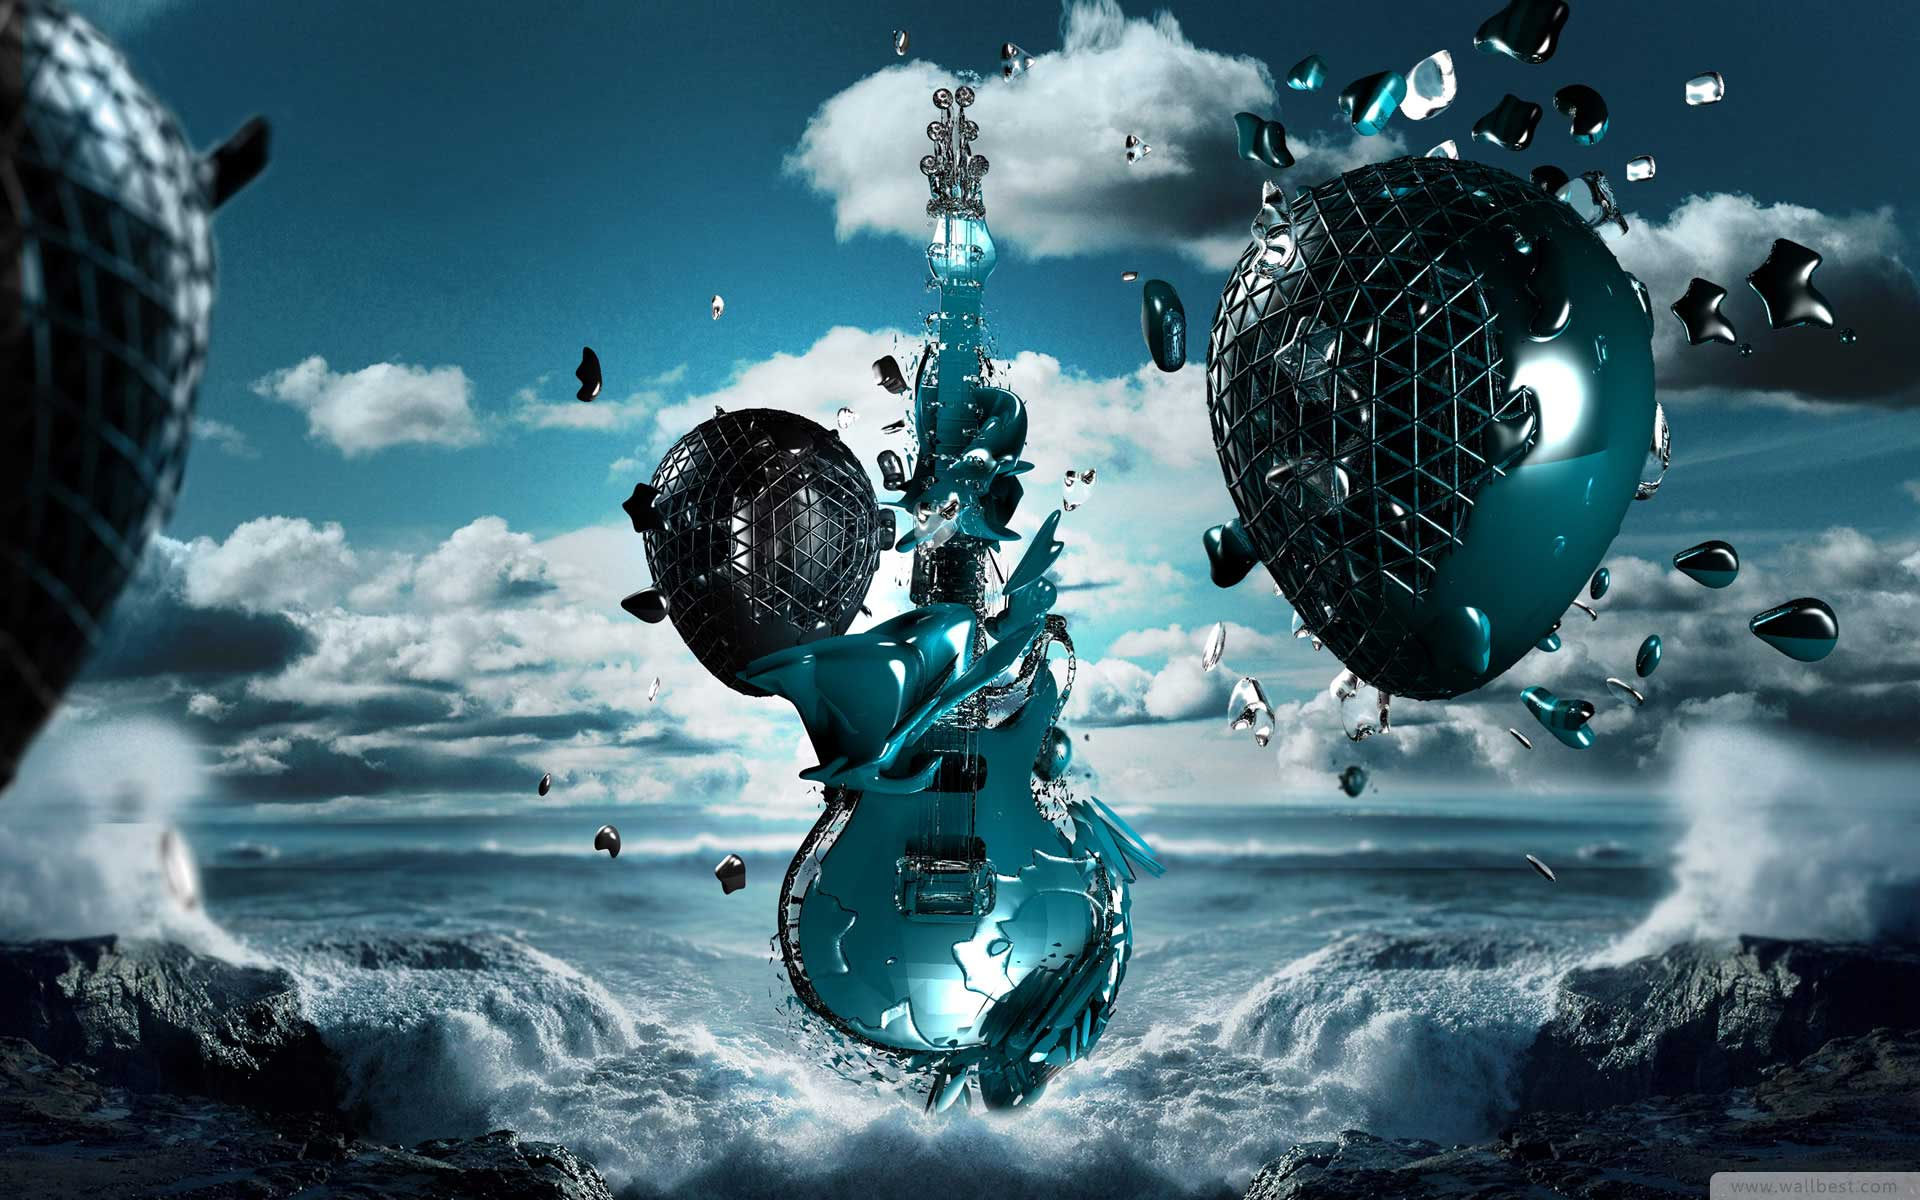 Guitar Alien Water 3d Widescreen